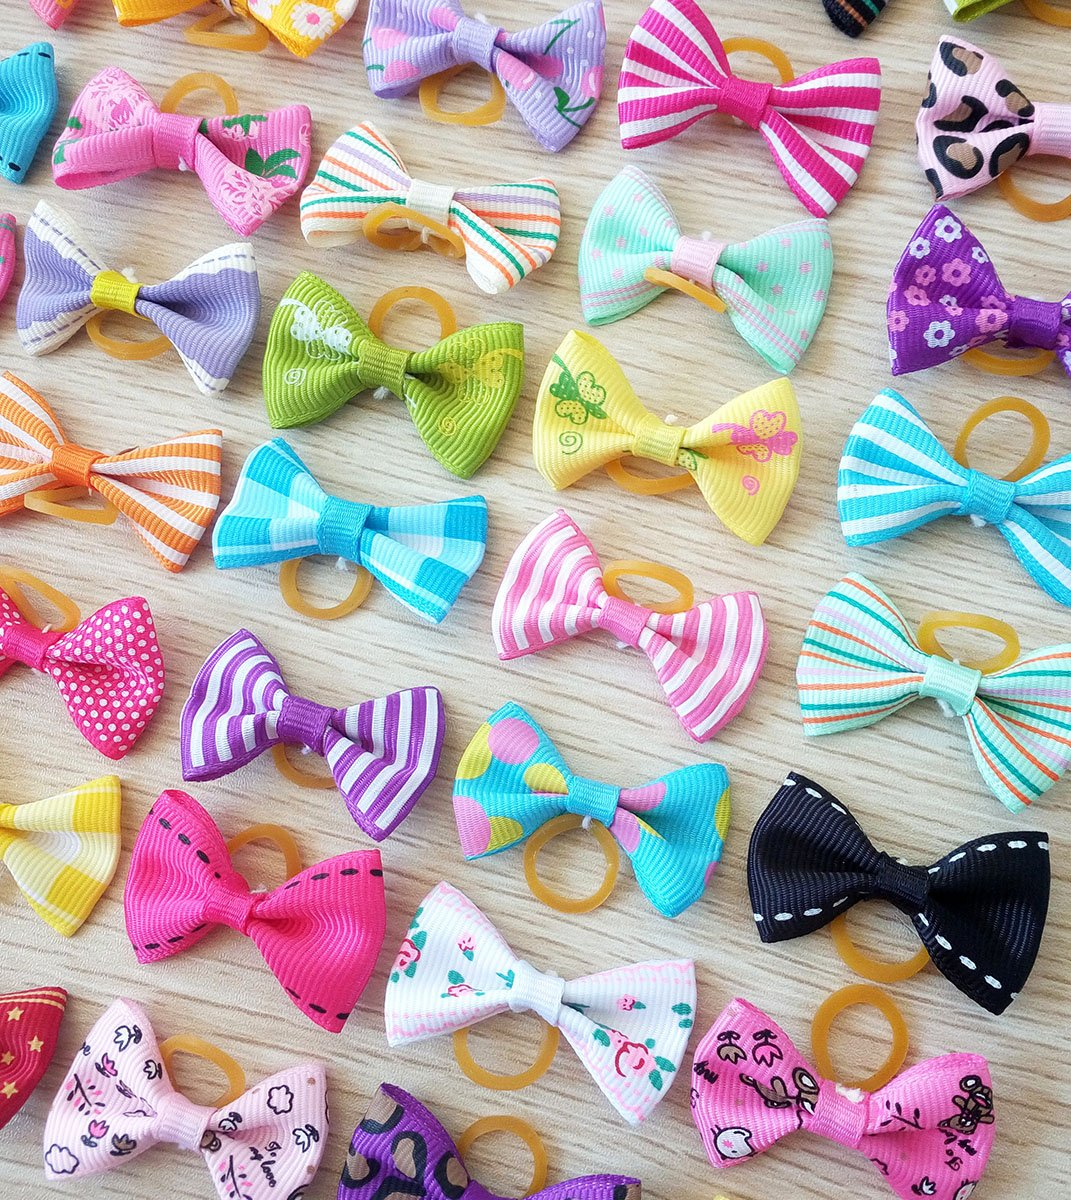 PET SHOW Pet Dog Hair Bows Bowknot for Yorkshire Girls Topknot with Rubber Bands Cat Puppy Headdress Grooming Hair Accessories Random color Pack of 50pcs = 25pairs by PET SHOW (Image #2)